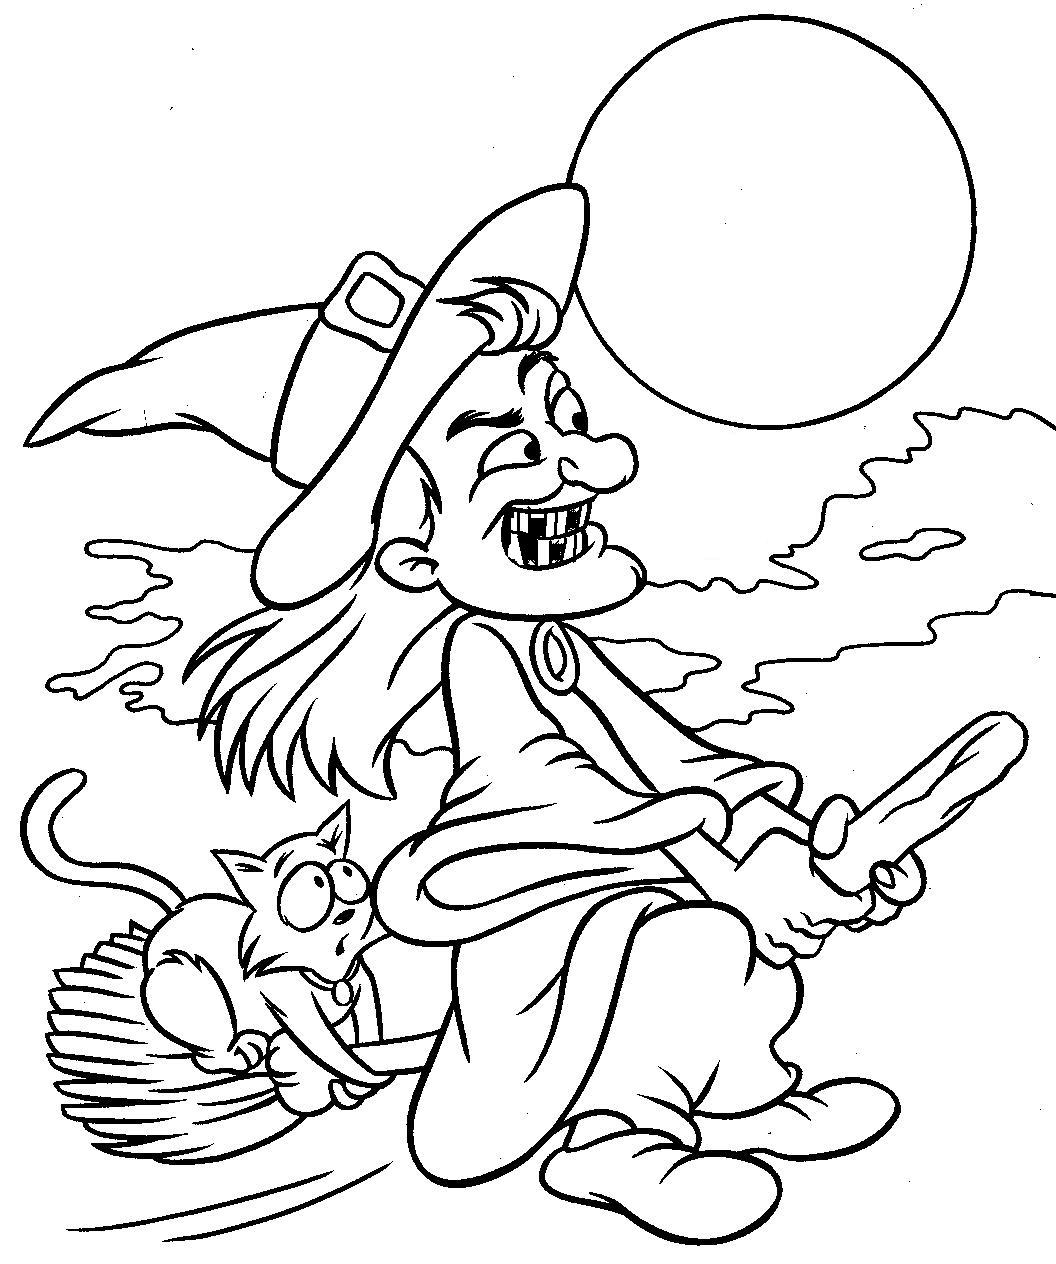 coloring pages kids halloween | coloring: Halloween coloring pics